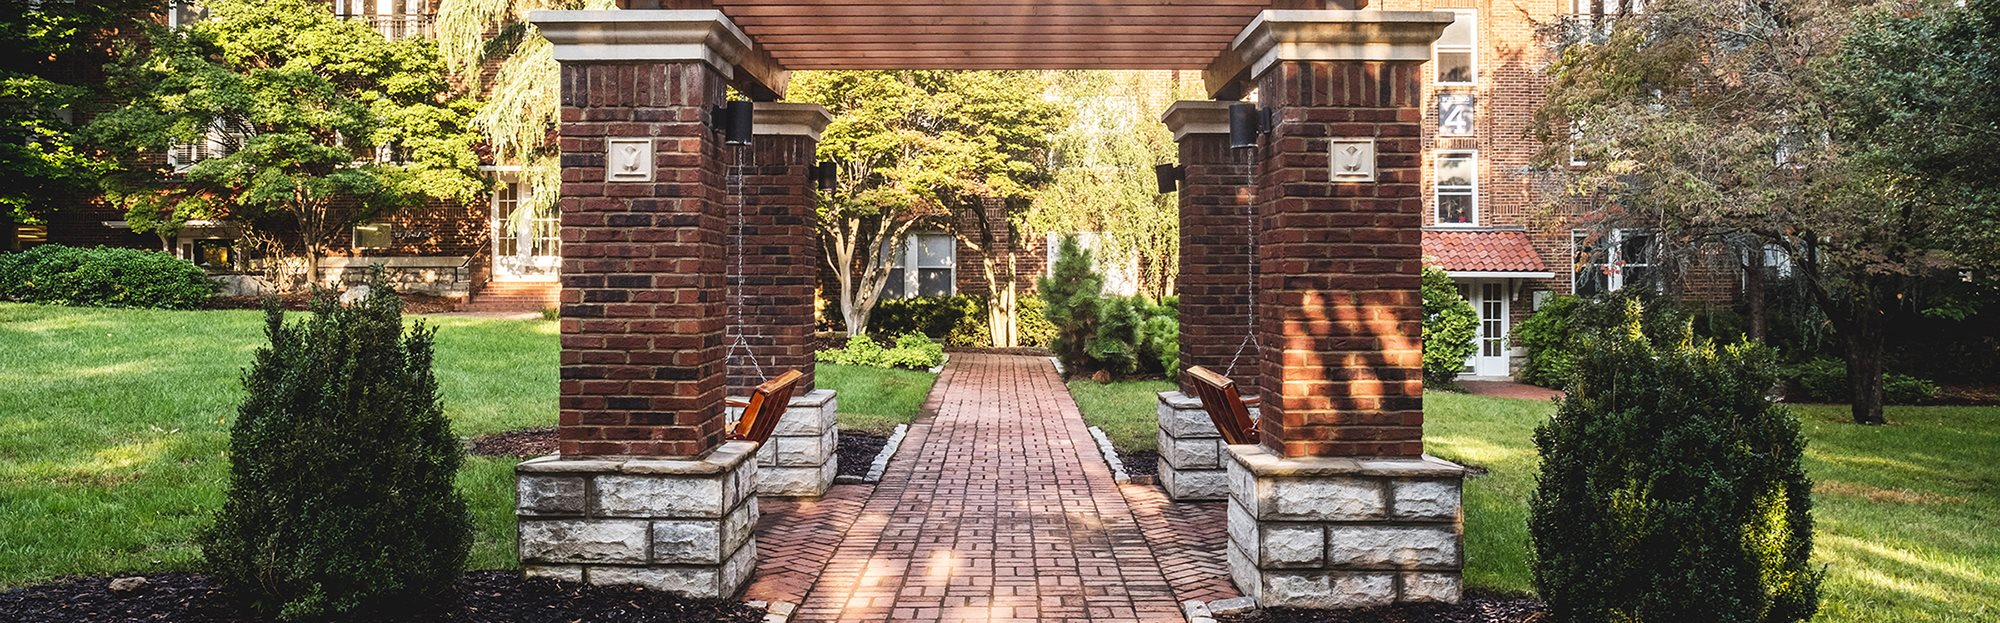 Hayes House - Exterior landscape and pergola with walkway